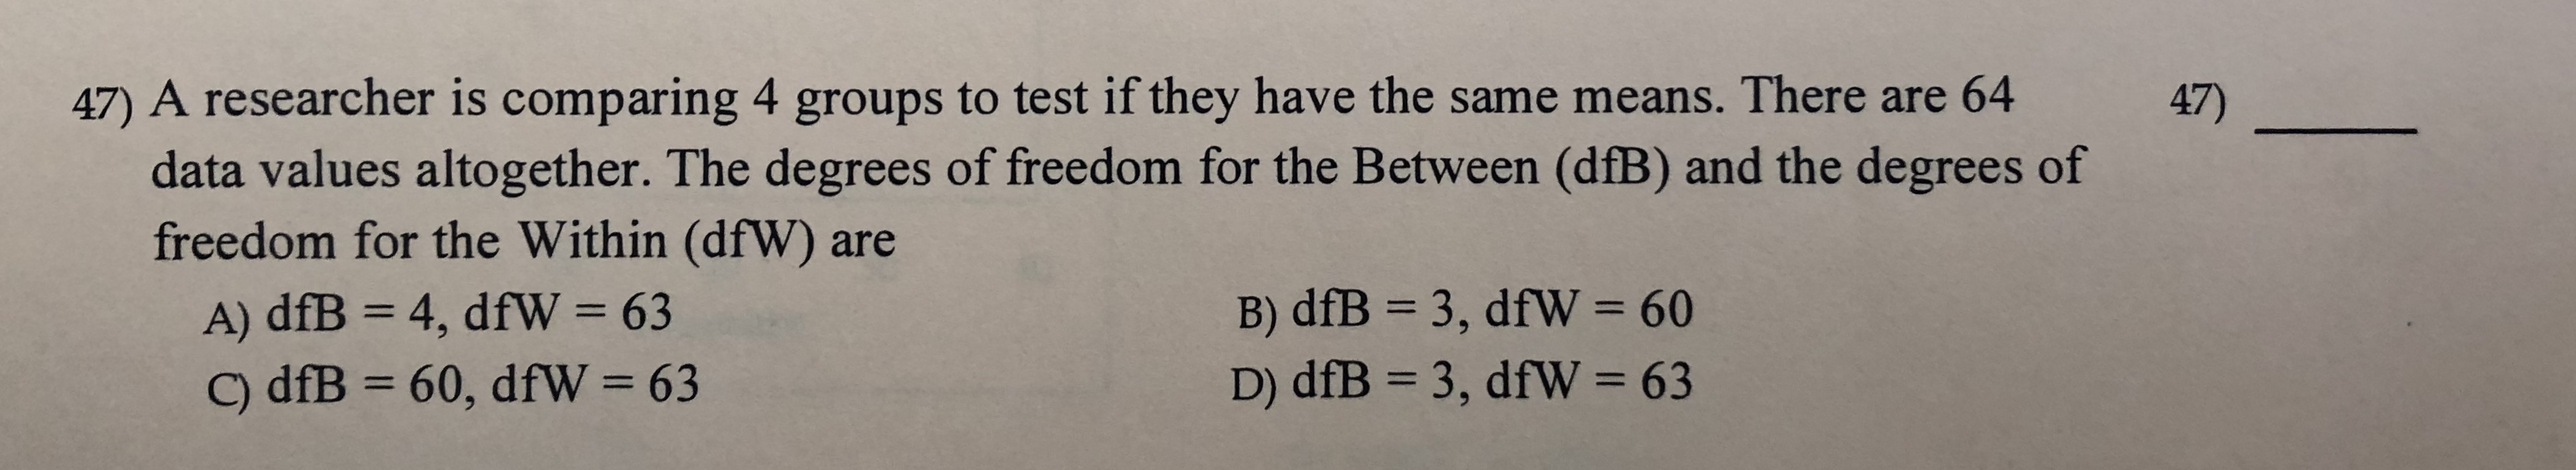 47) A researcher is comparing 4 data values altogether. The degrees of freedom for the Between (dfB) and the degrees of freedom for the Within (dfW) are A) dfB 4, dfW = 63 C) dfB 60, dfW = 63 groups to test if they have the same means. There are 64 47) 3, dfW = 60 3, dfW = 63 B) dfB D) dfB 1 1 11